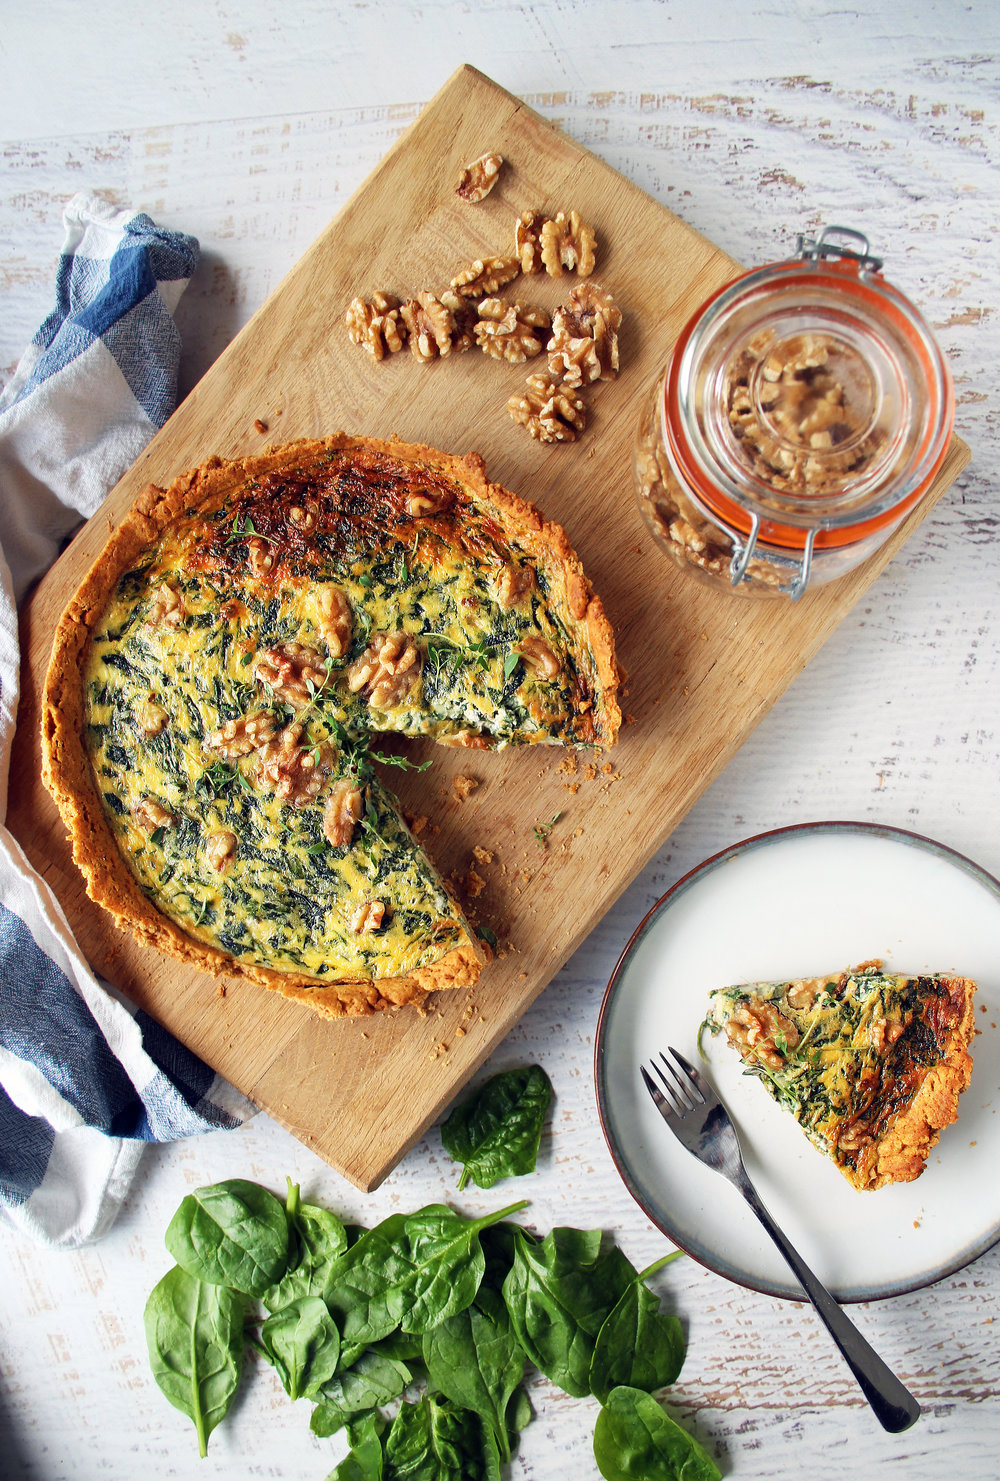 Walnut pastry quiche | The Flourishing Pantry